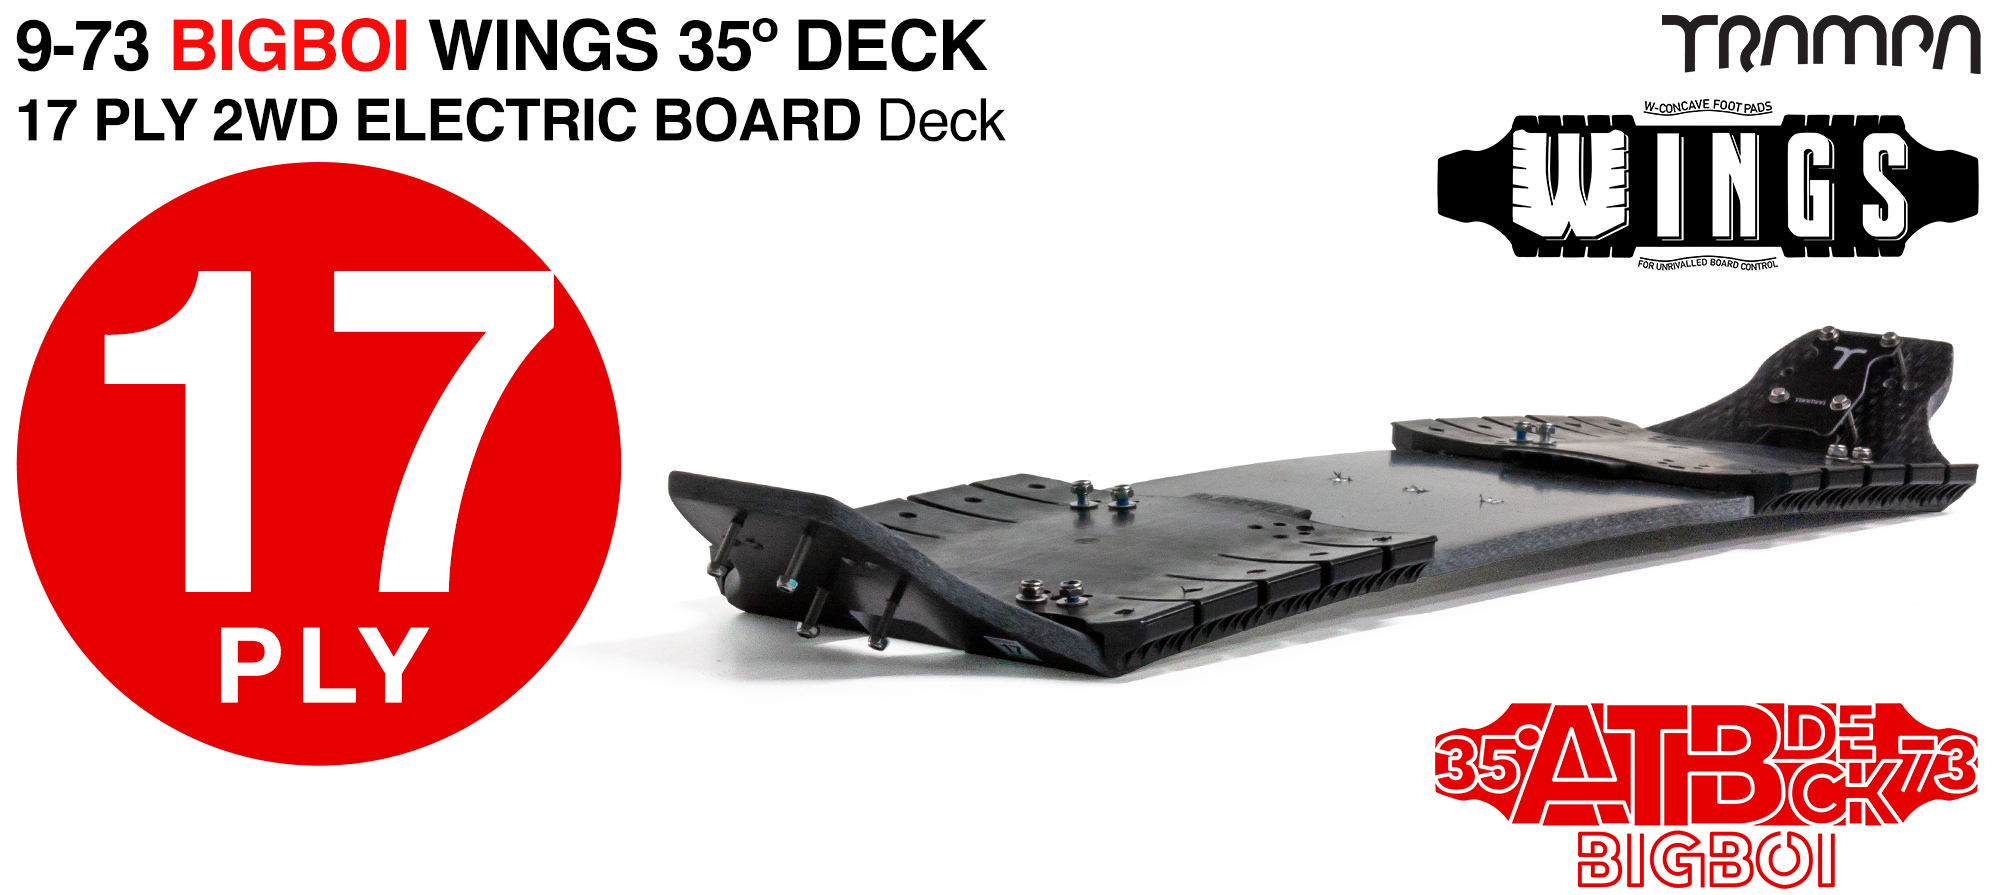 17ply 9-73 BigBoi Deck with WINGS & 2WD Cable Router - Stiff